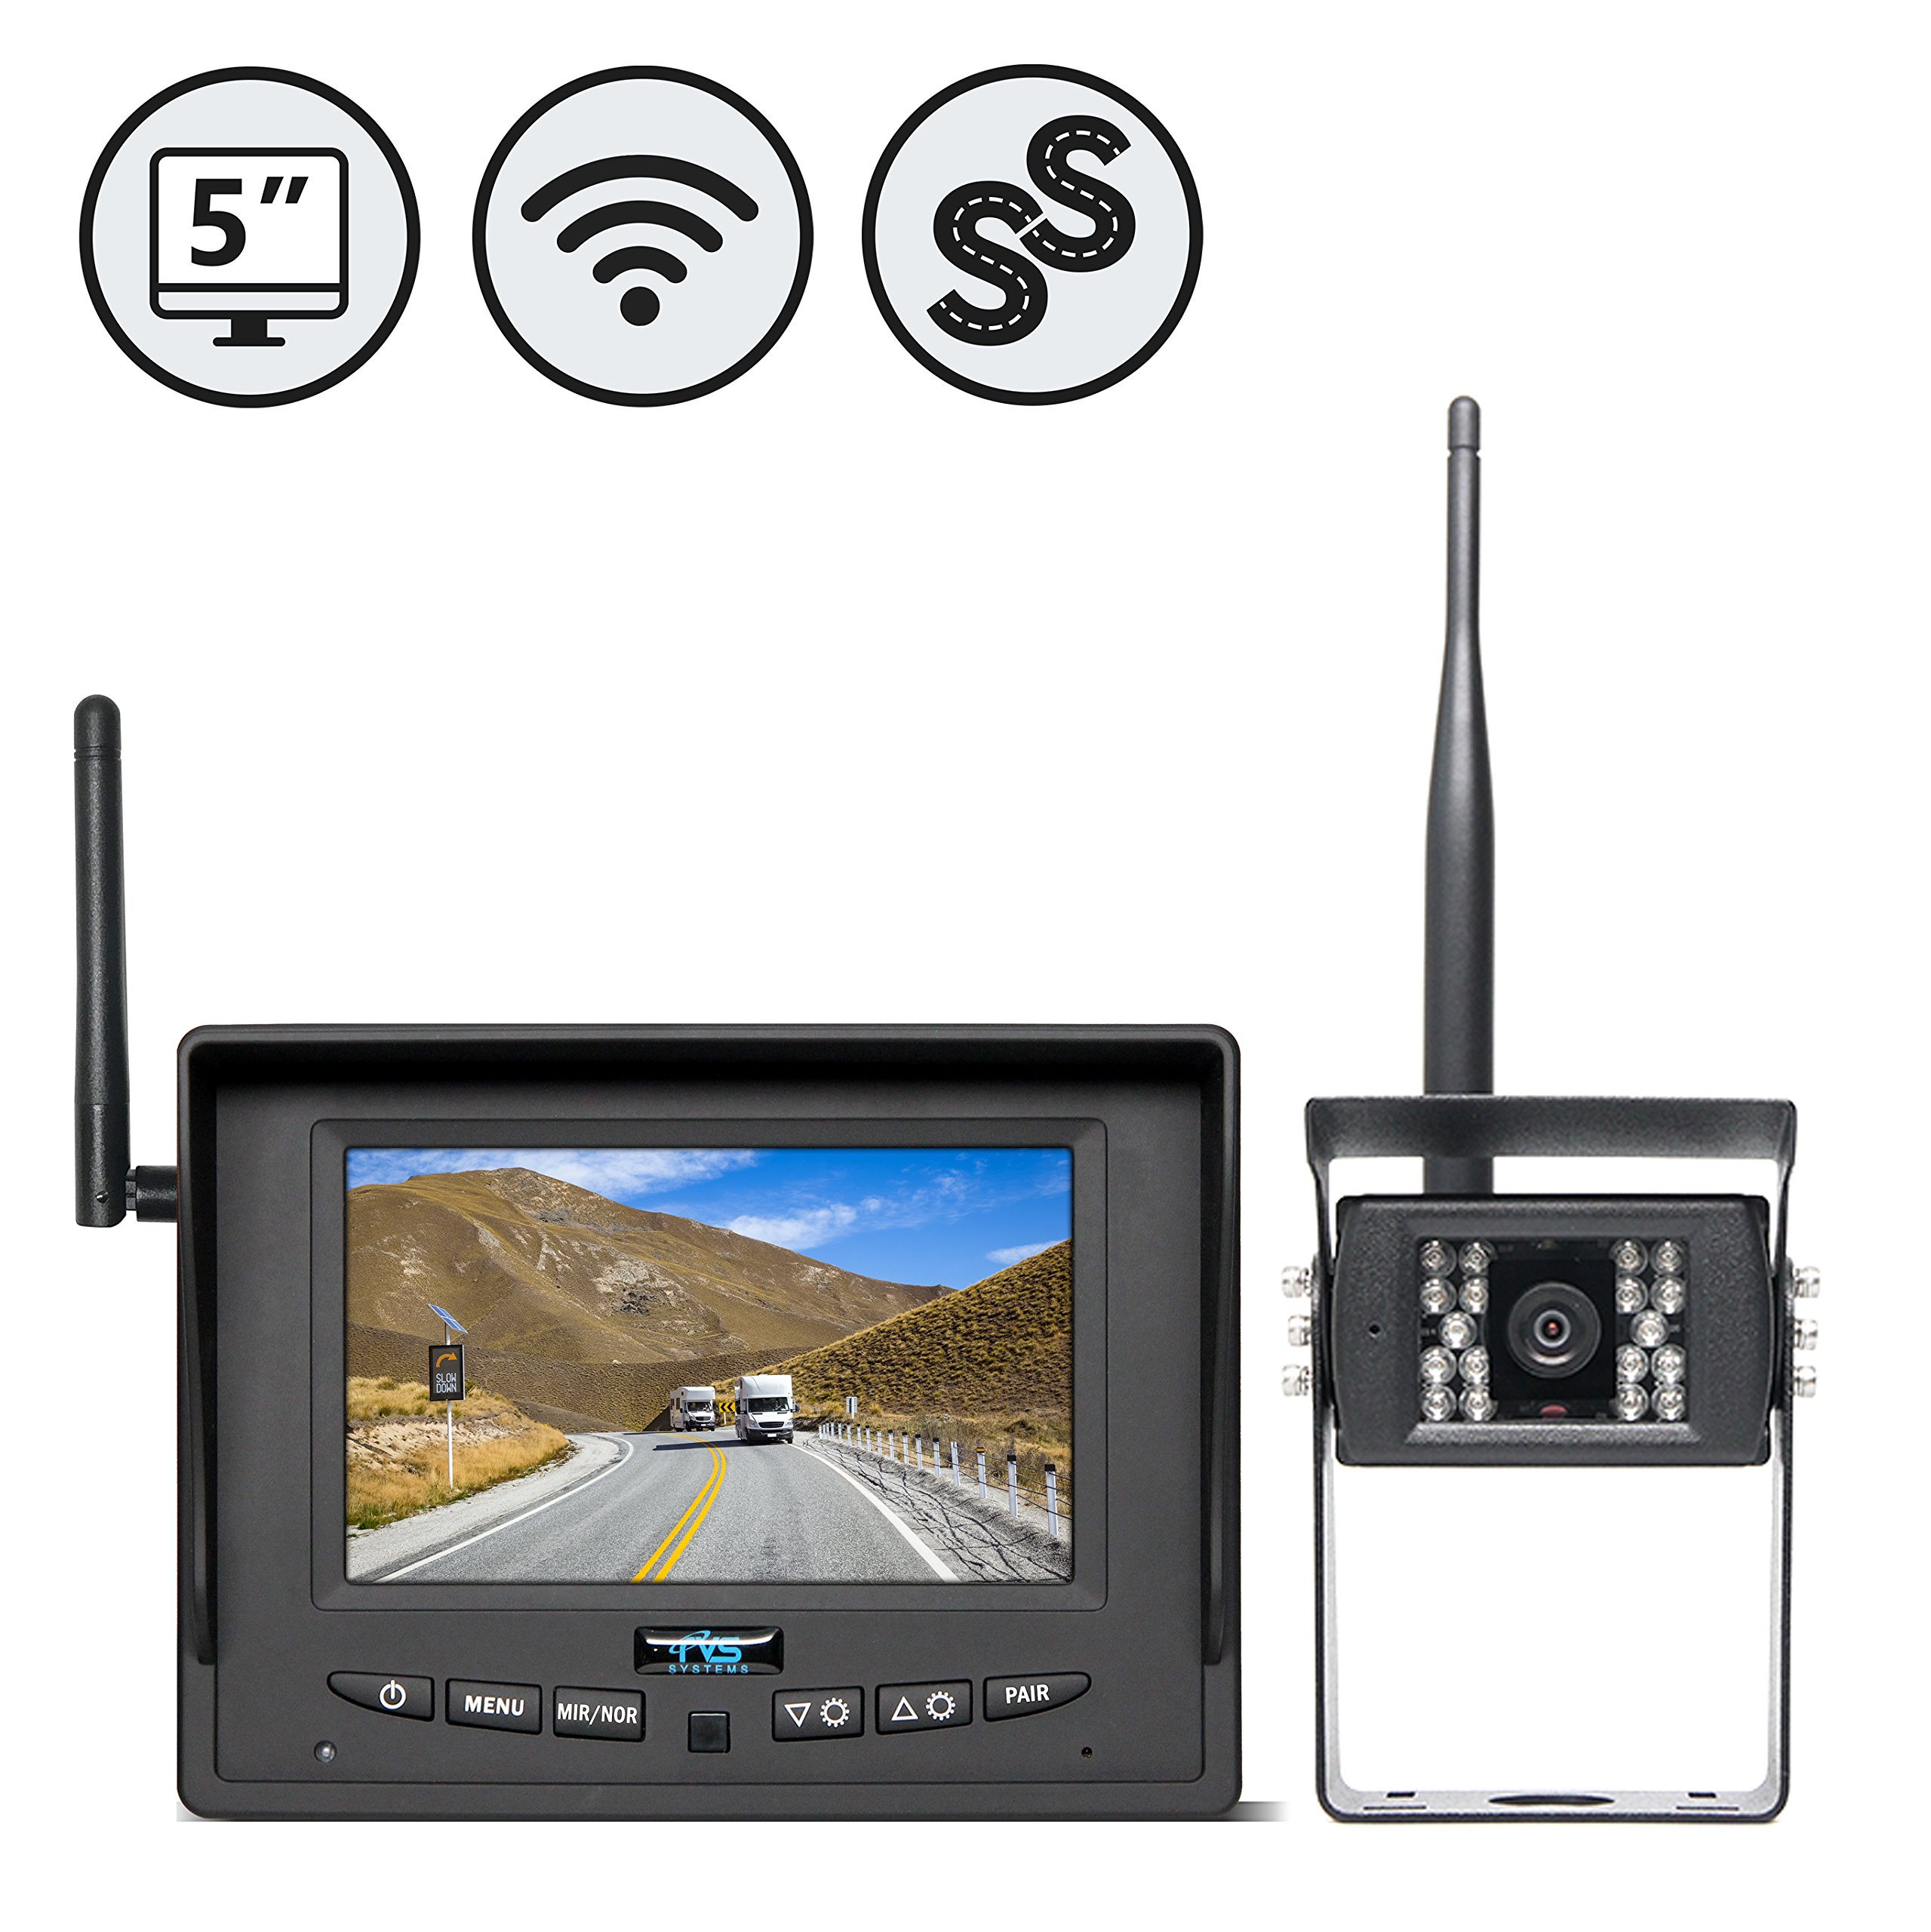 Wireless Backup Camera System for RV, Truck, Bus, Commercial Vehicles by Rear View Safety RVS-155W (with Furrion Prewire Mounting Bracket)